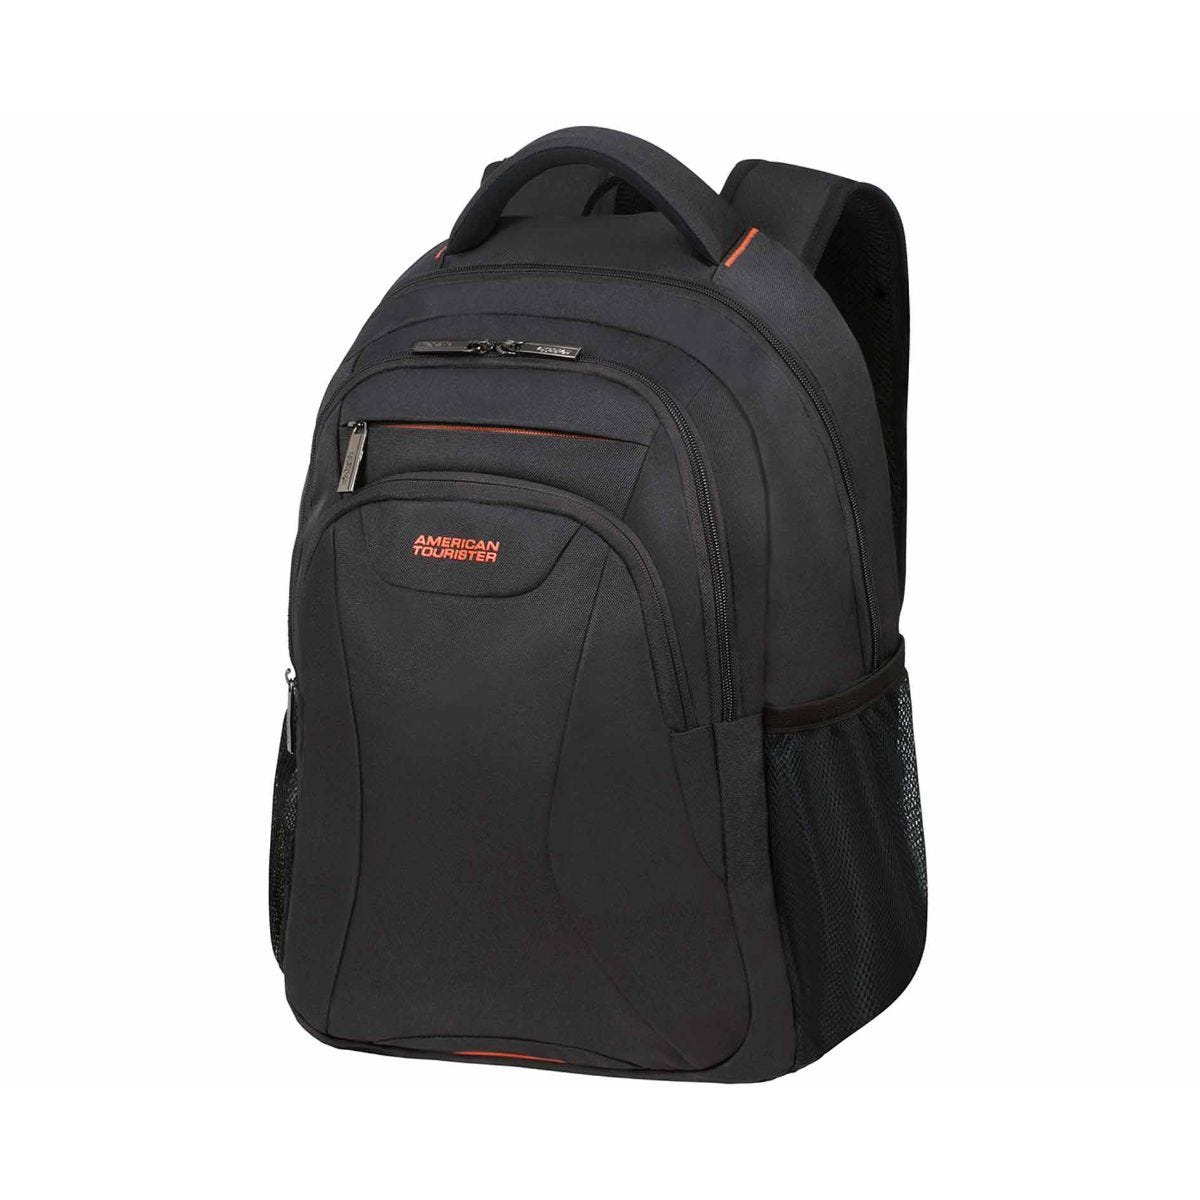 17013496cd29 American Tourister Work Backpack 15.6 Inch